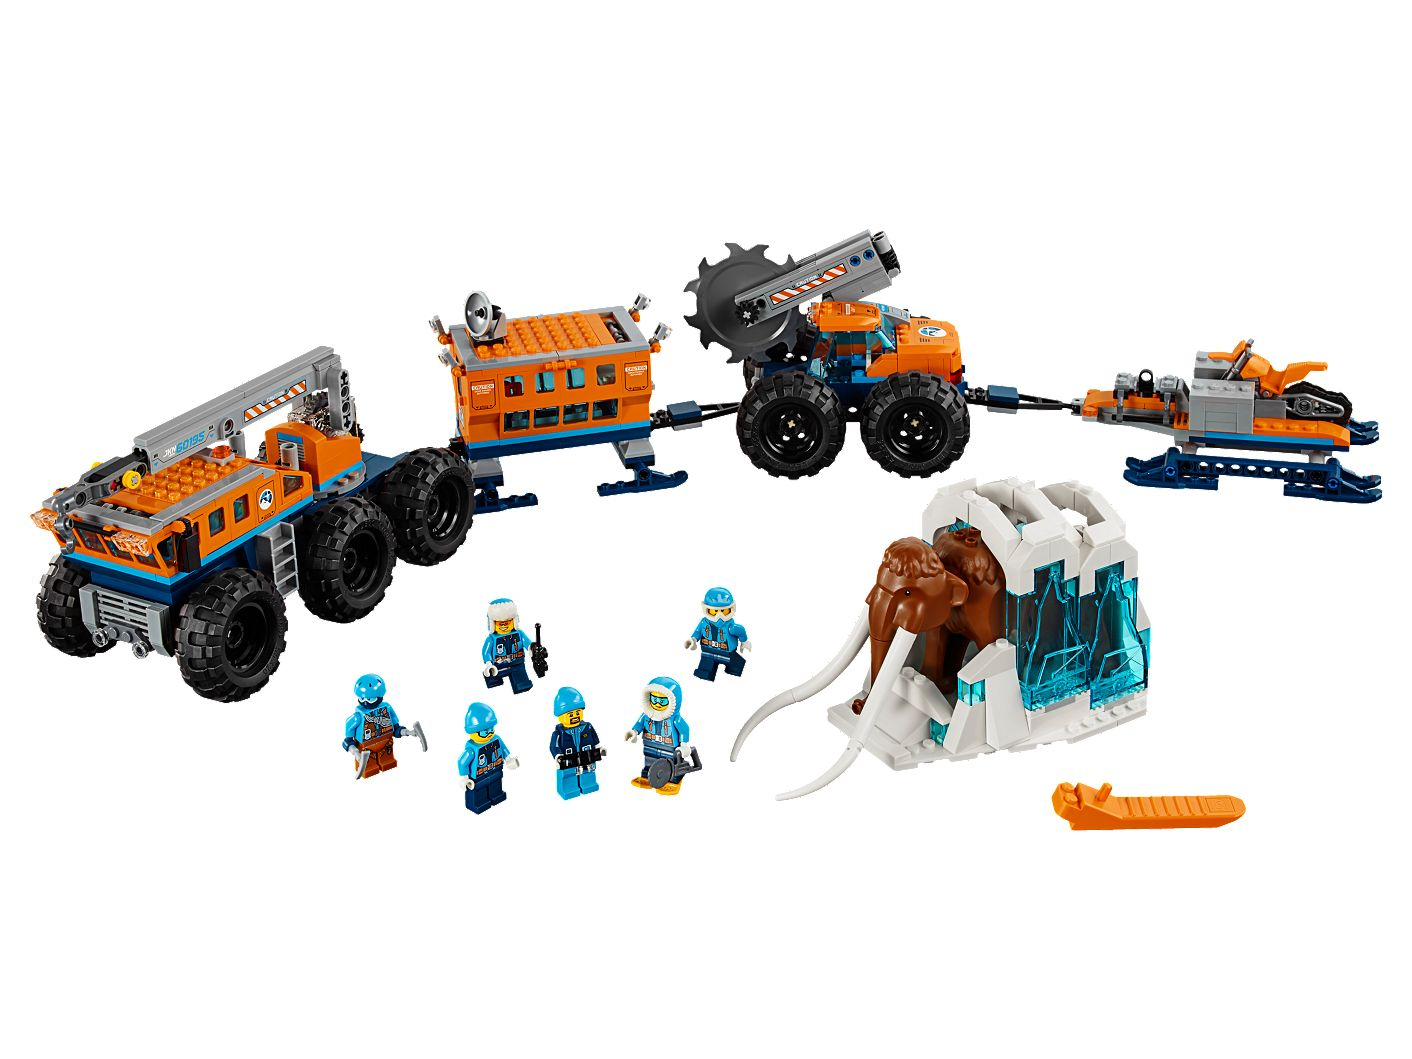 Arctic Mobile Exploration Base 60195 | City | Buy online at the Official LEGO® Shop US